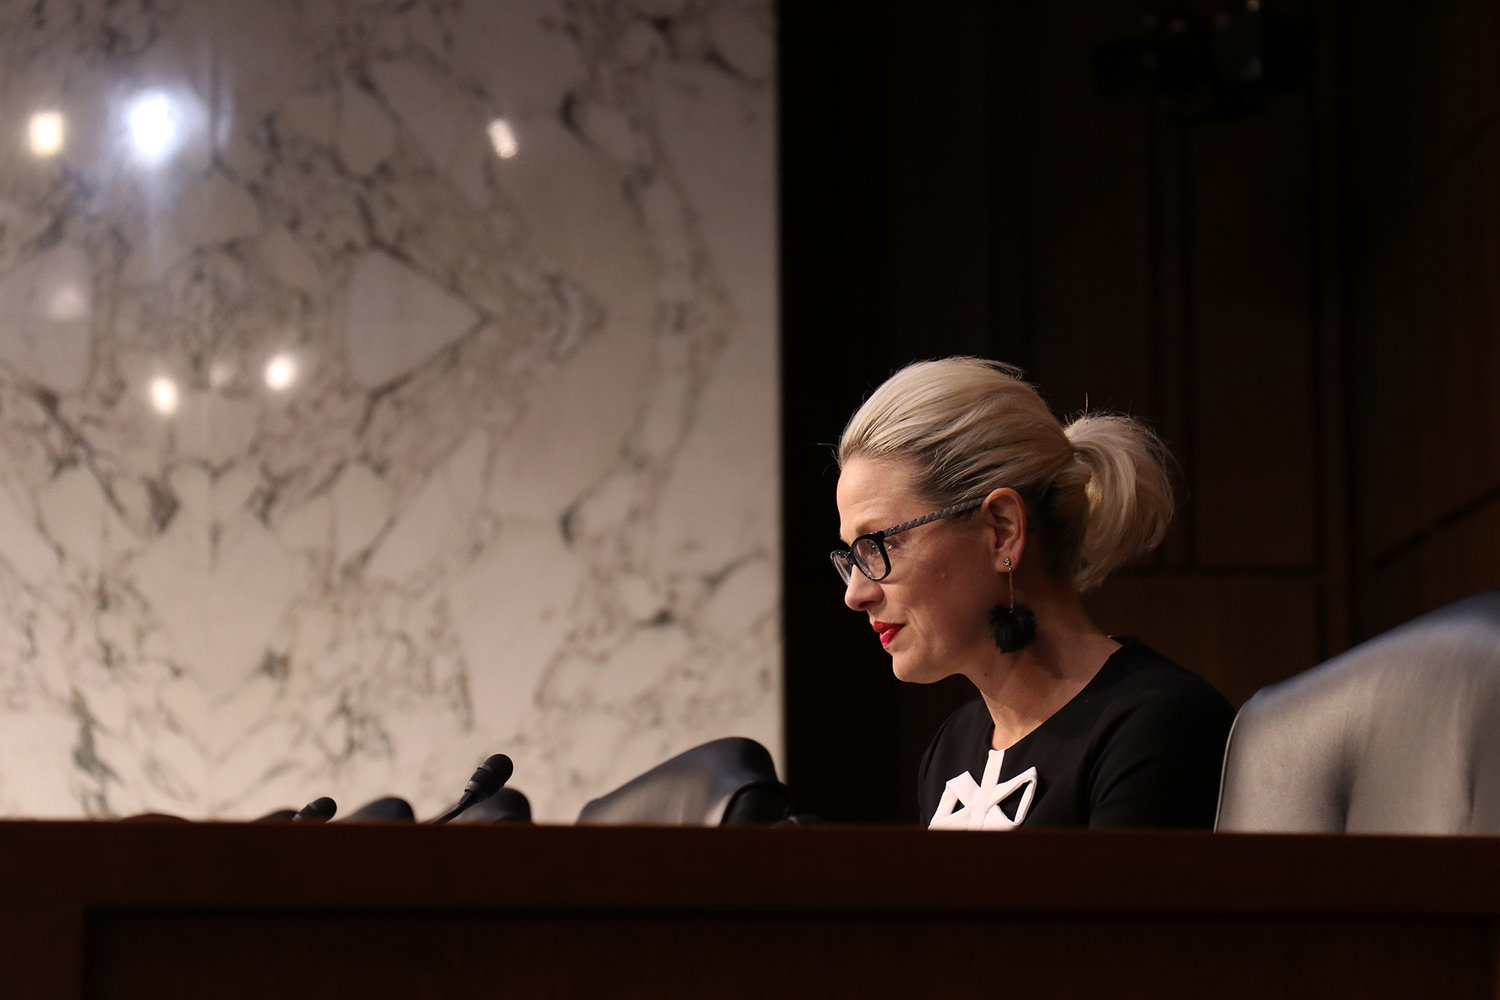 Sen. Kyrsten Sinema, D-Arizona, said in a Senate Commerce, Science and Transportation Committee hearing on robocalls in April 2019 that her office gets numerous complaints about such calls.